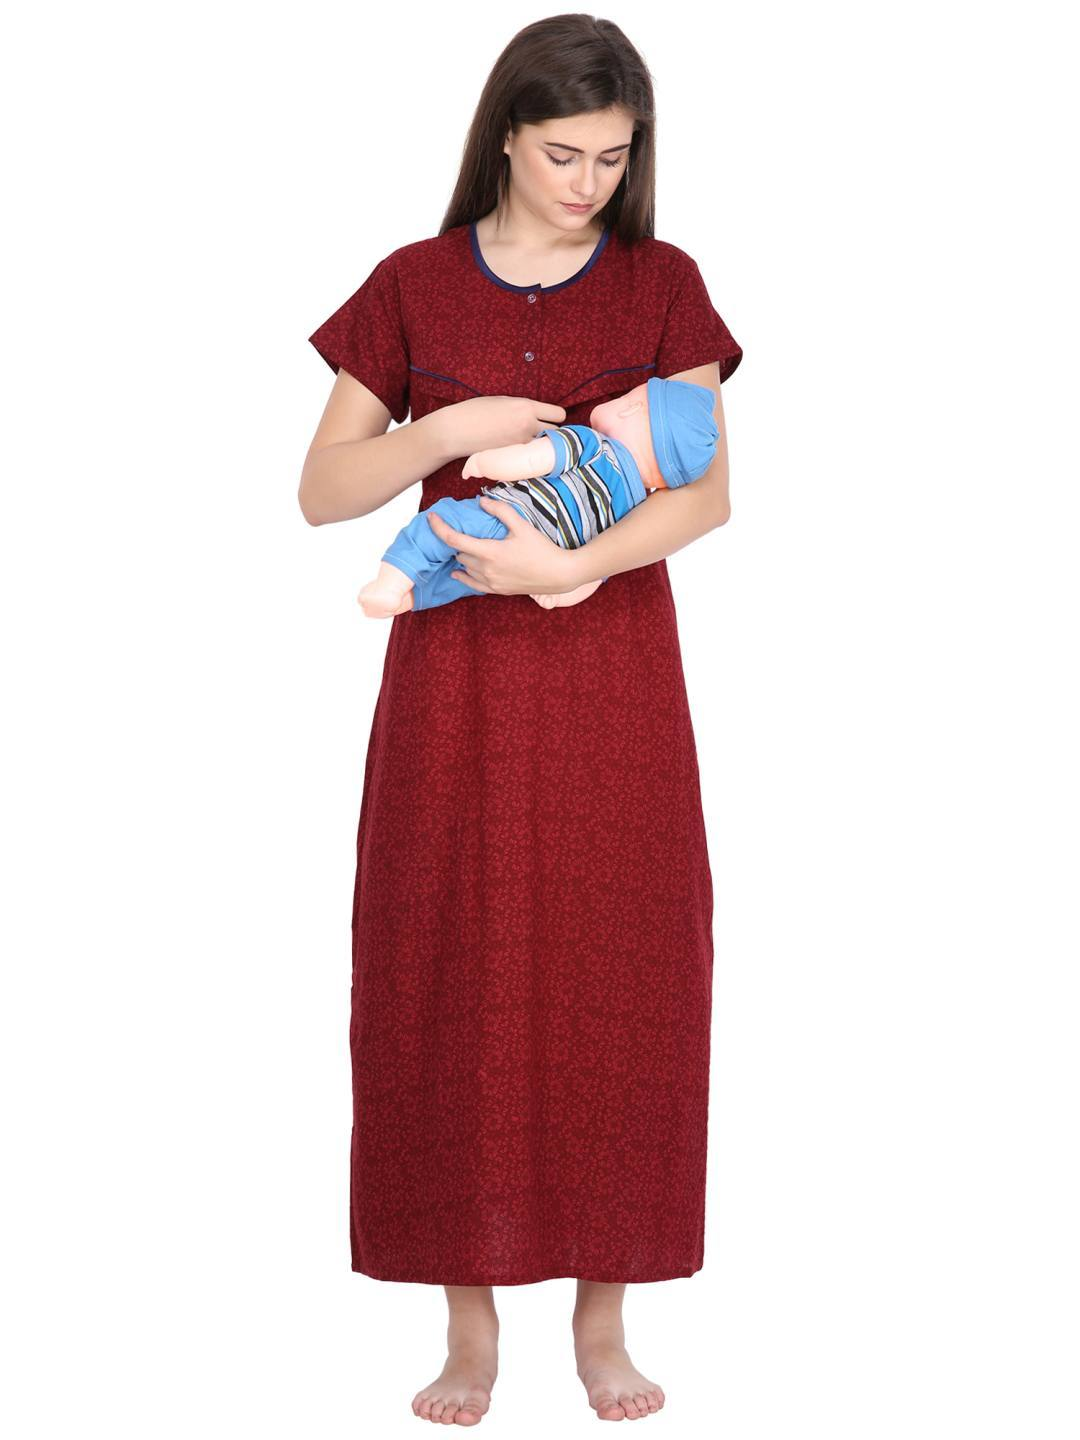 Klamotten Women's Nursing Nightdress C4M30